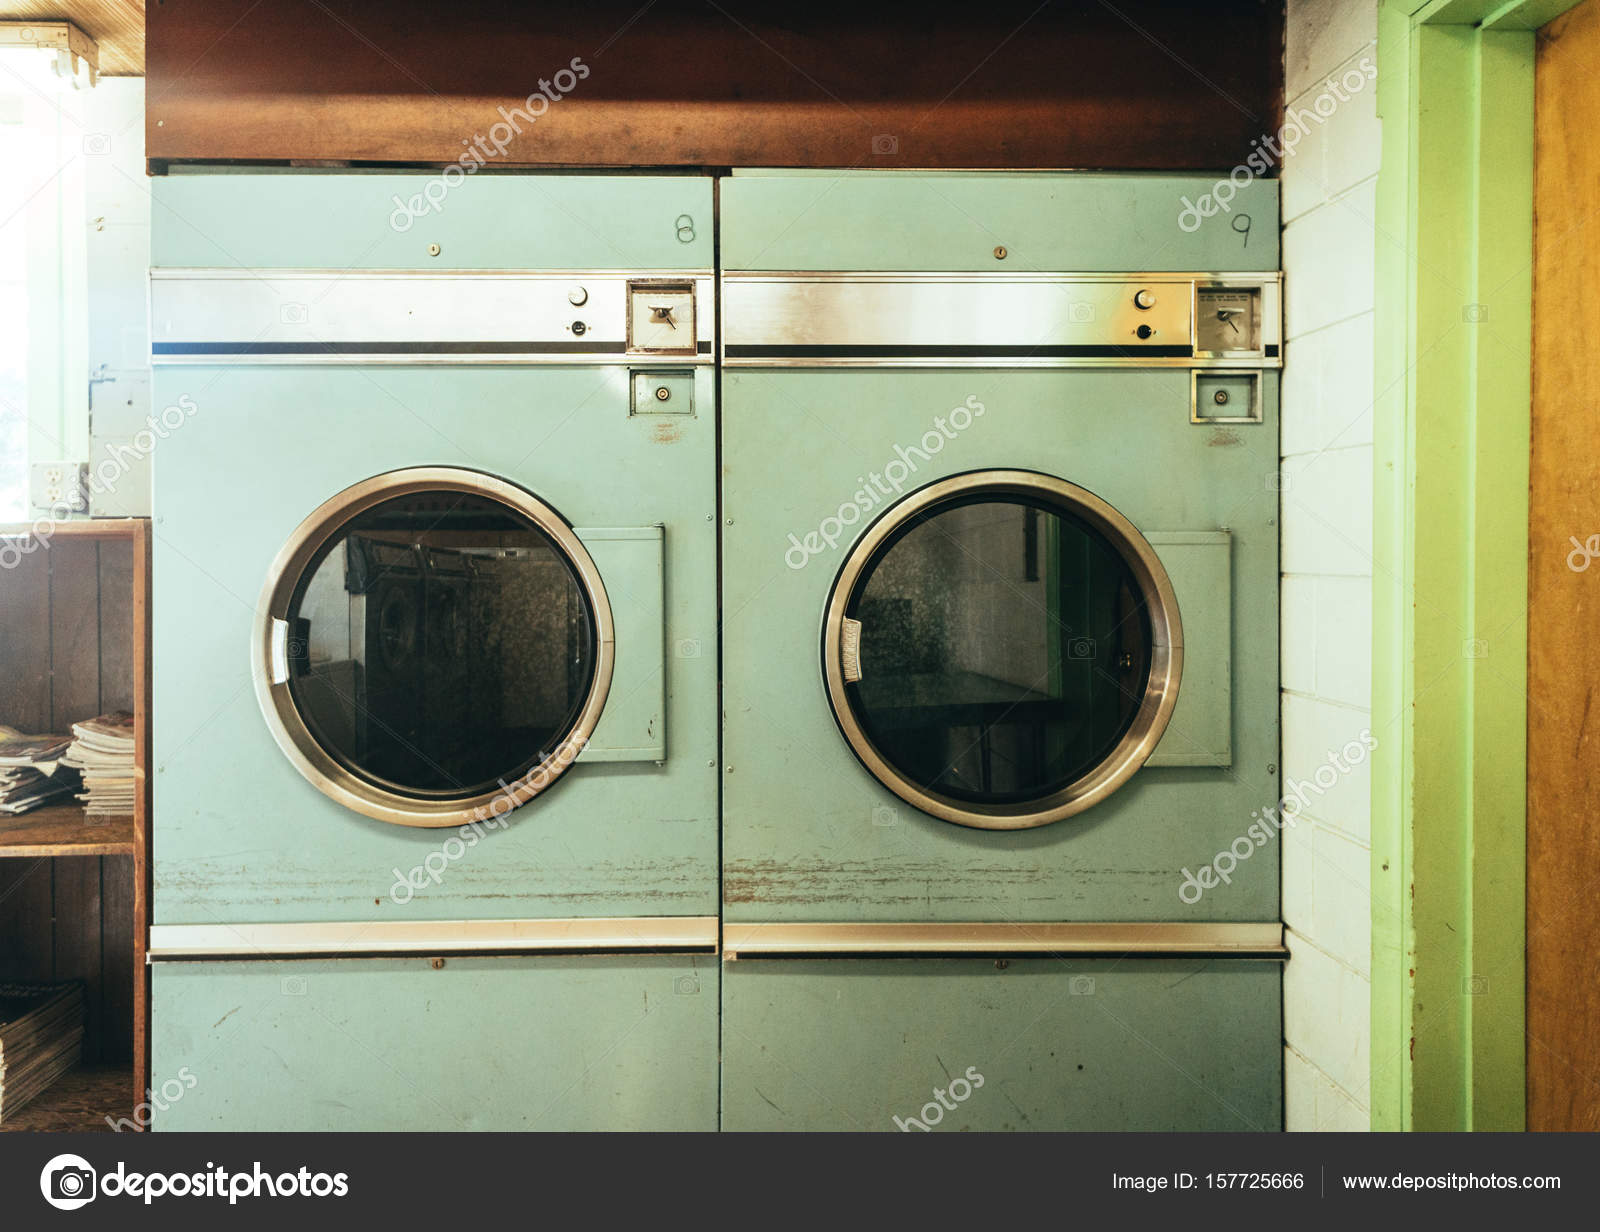 video mat and me laundromat wash watch closest coin washer stock w near basket hd cart laundry mats rolling youtube footage dryer